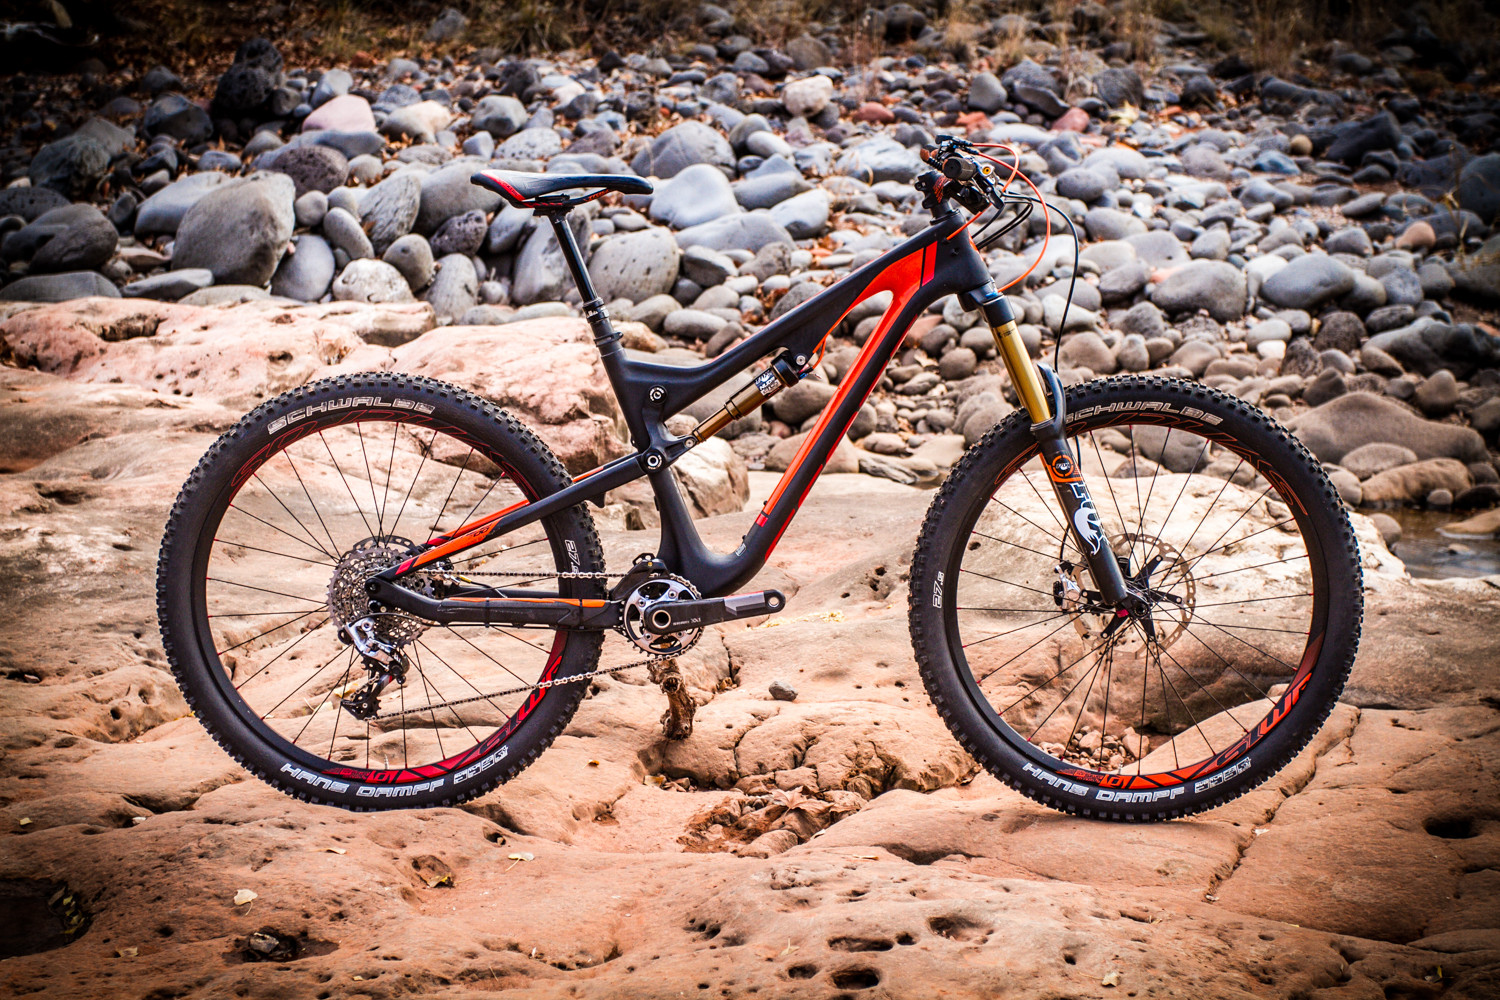 2014 Scott Genius LT 700 Tuned - 2014 Test Sessions: Scott Genius LT 700 Tuned - Mountain Biking Pictures - Vital MTB